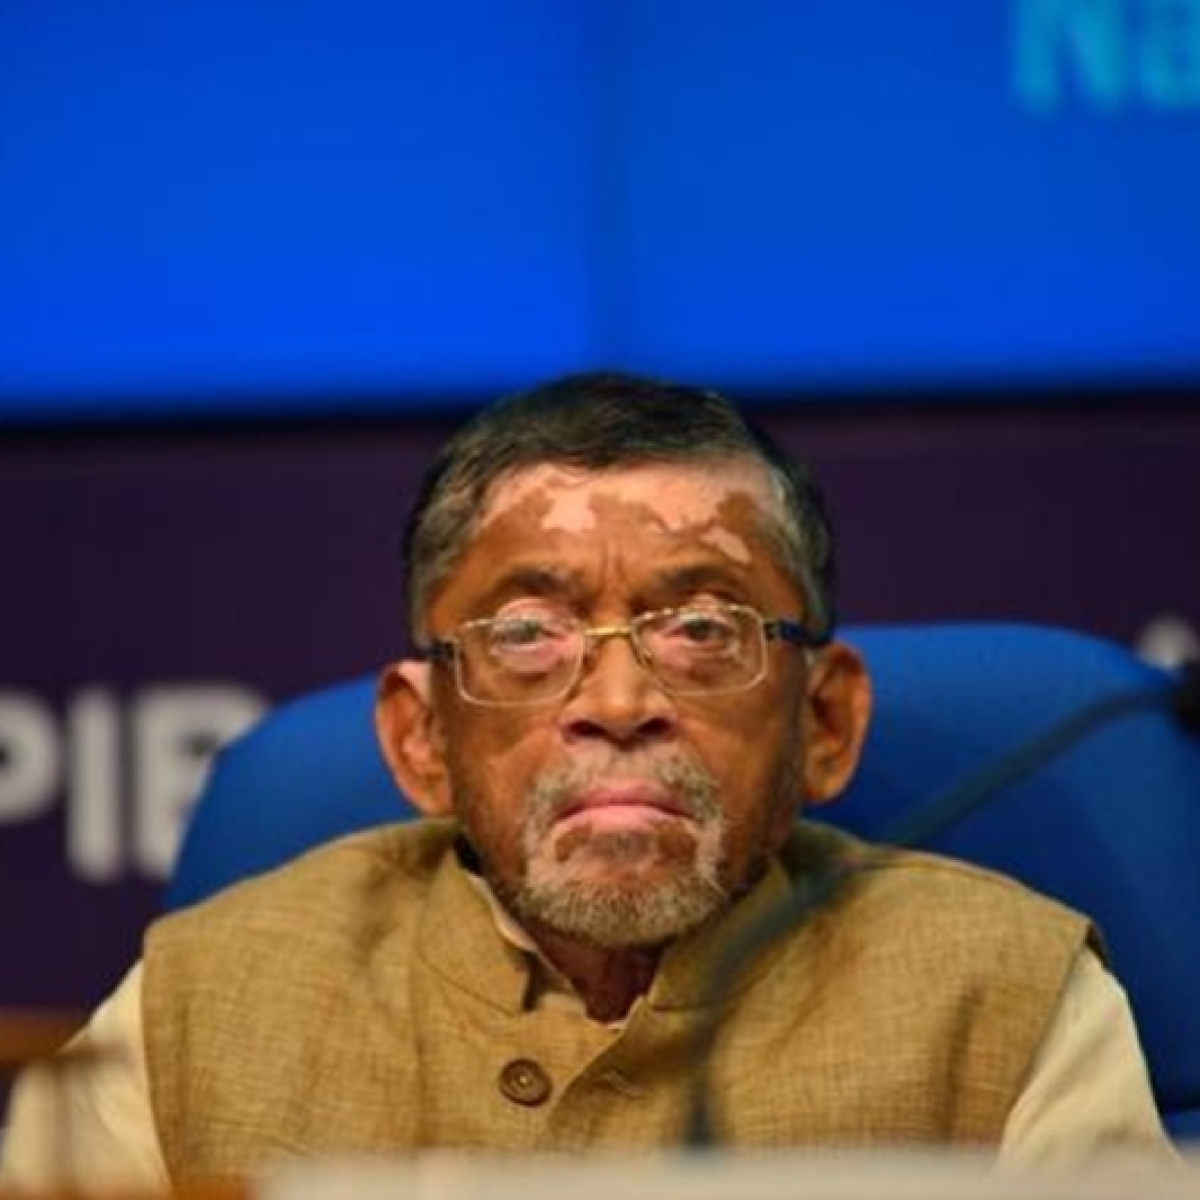 Union Minister Santosh Gangwar complains about COVID-19 situation in Bareilly, tells UP CM officials don't take calls